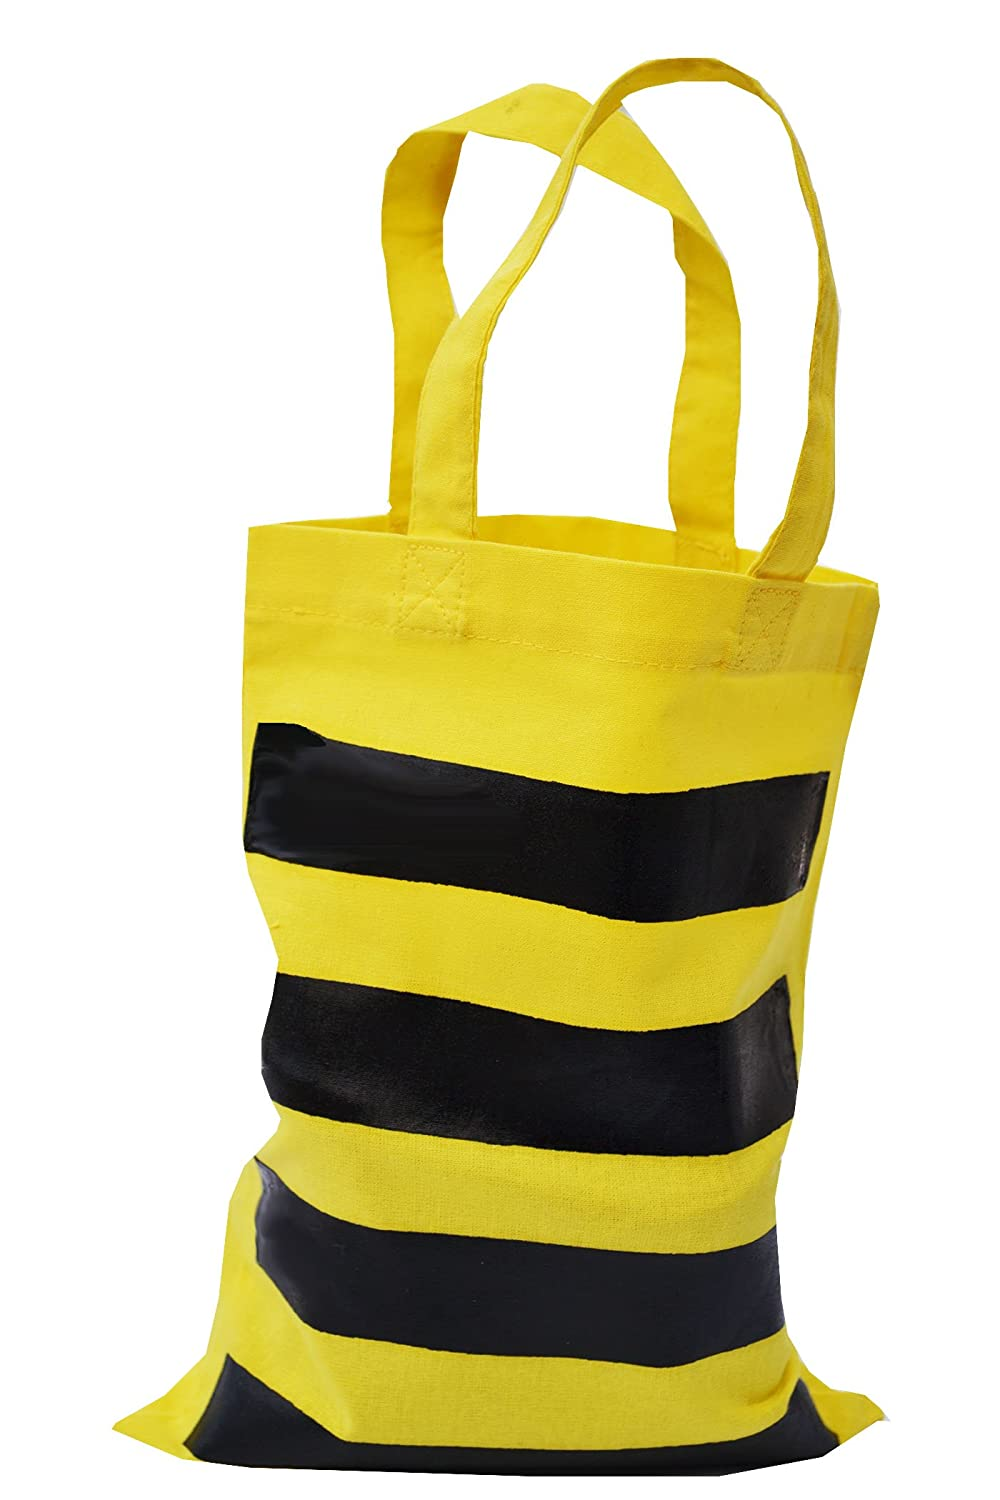 25cd69a45ecf SPECIAL OFFER! BEE yellow cotton tote bag.  Amazon.co.uk  Clothing